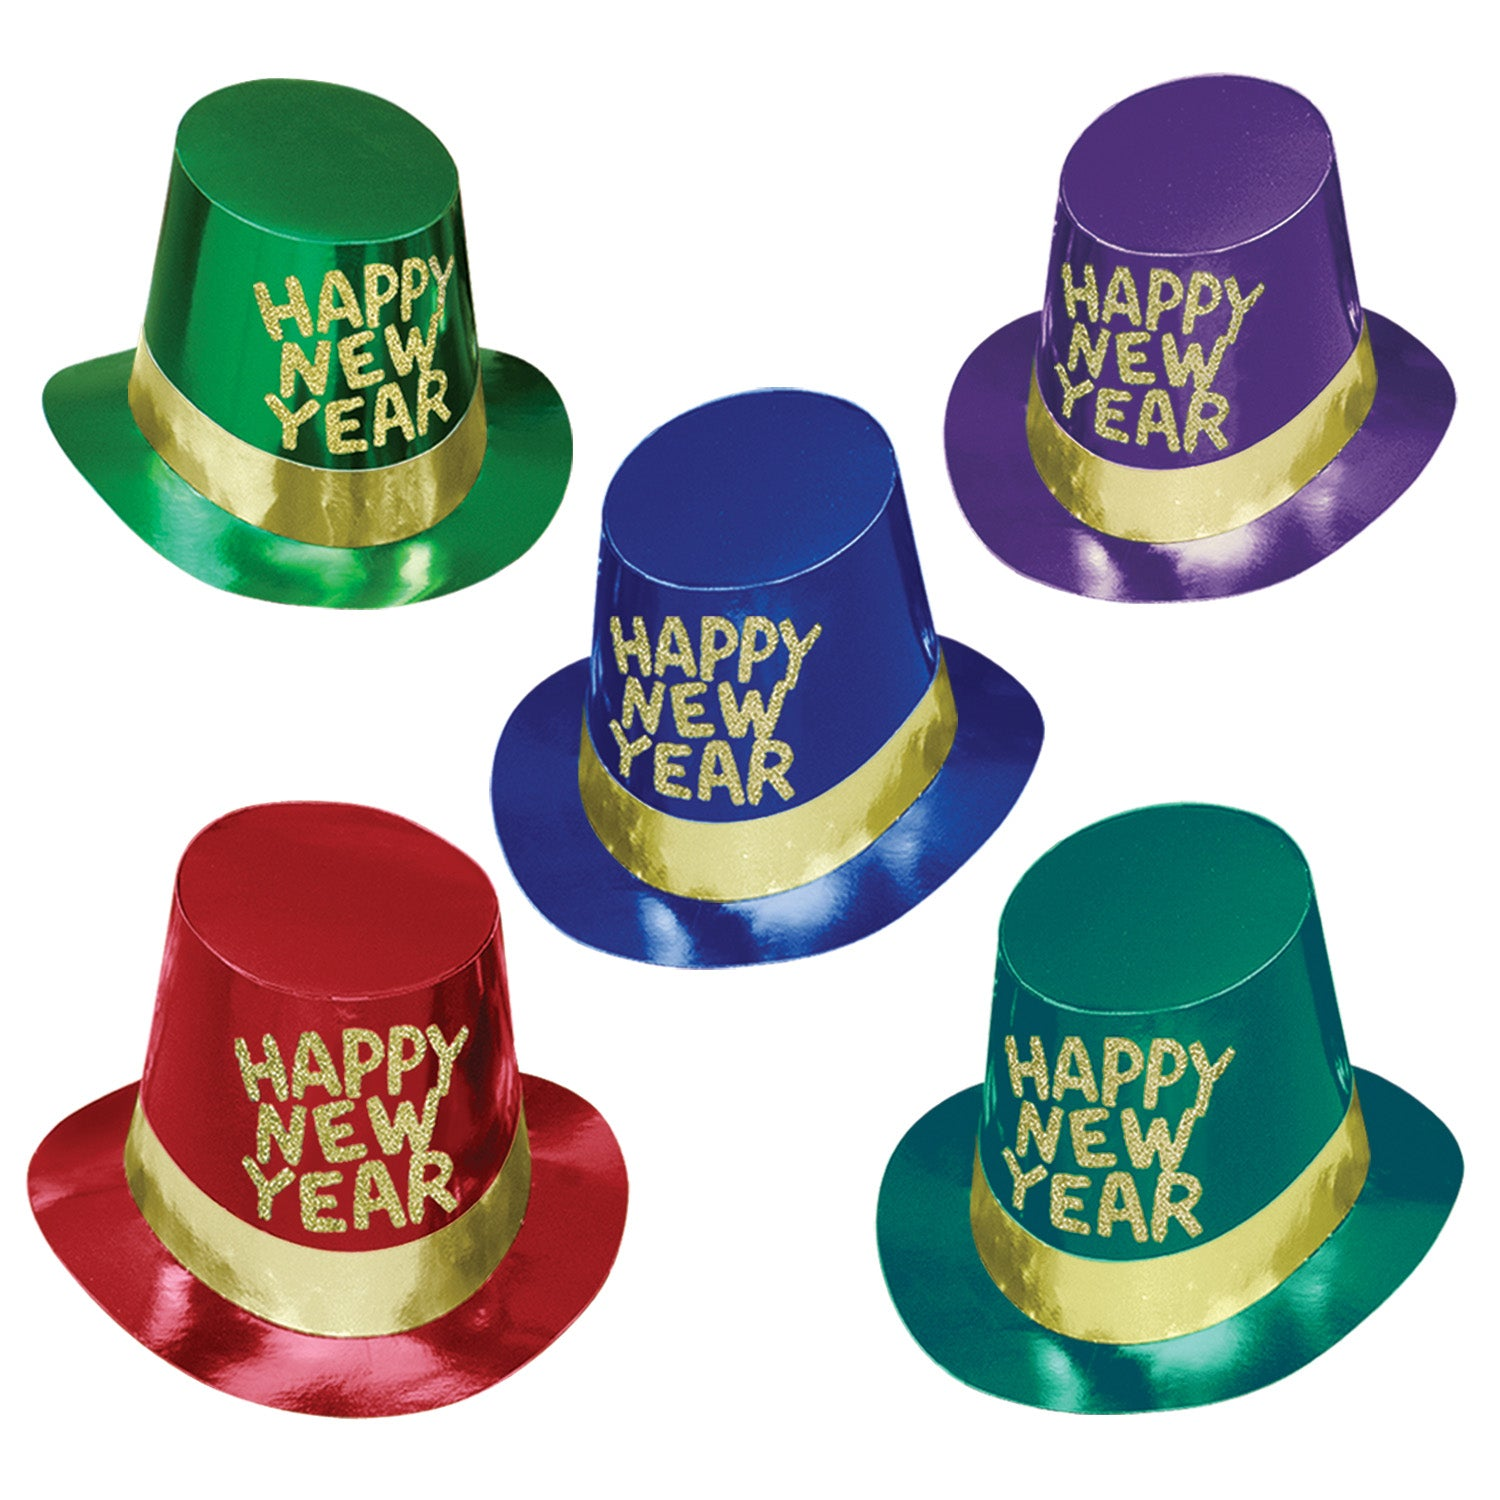 25 Case) Beistle Gold Coast New Years Party Hi-Hats - Bulk Party ... d8469f0a3ff7